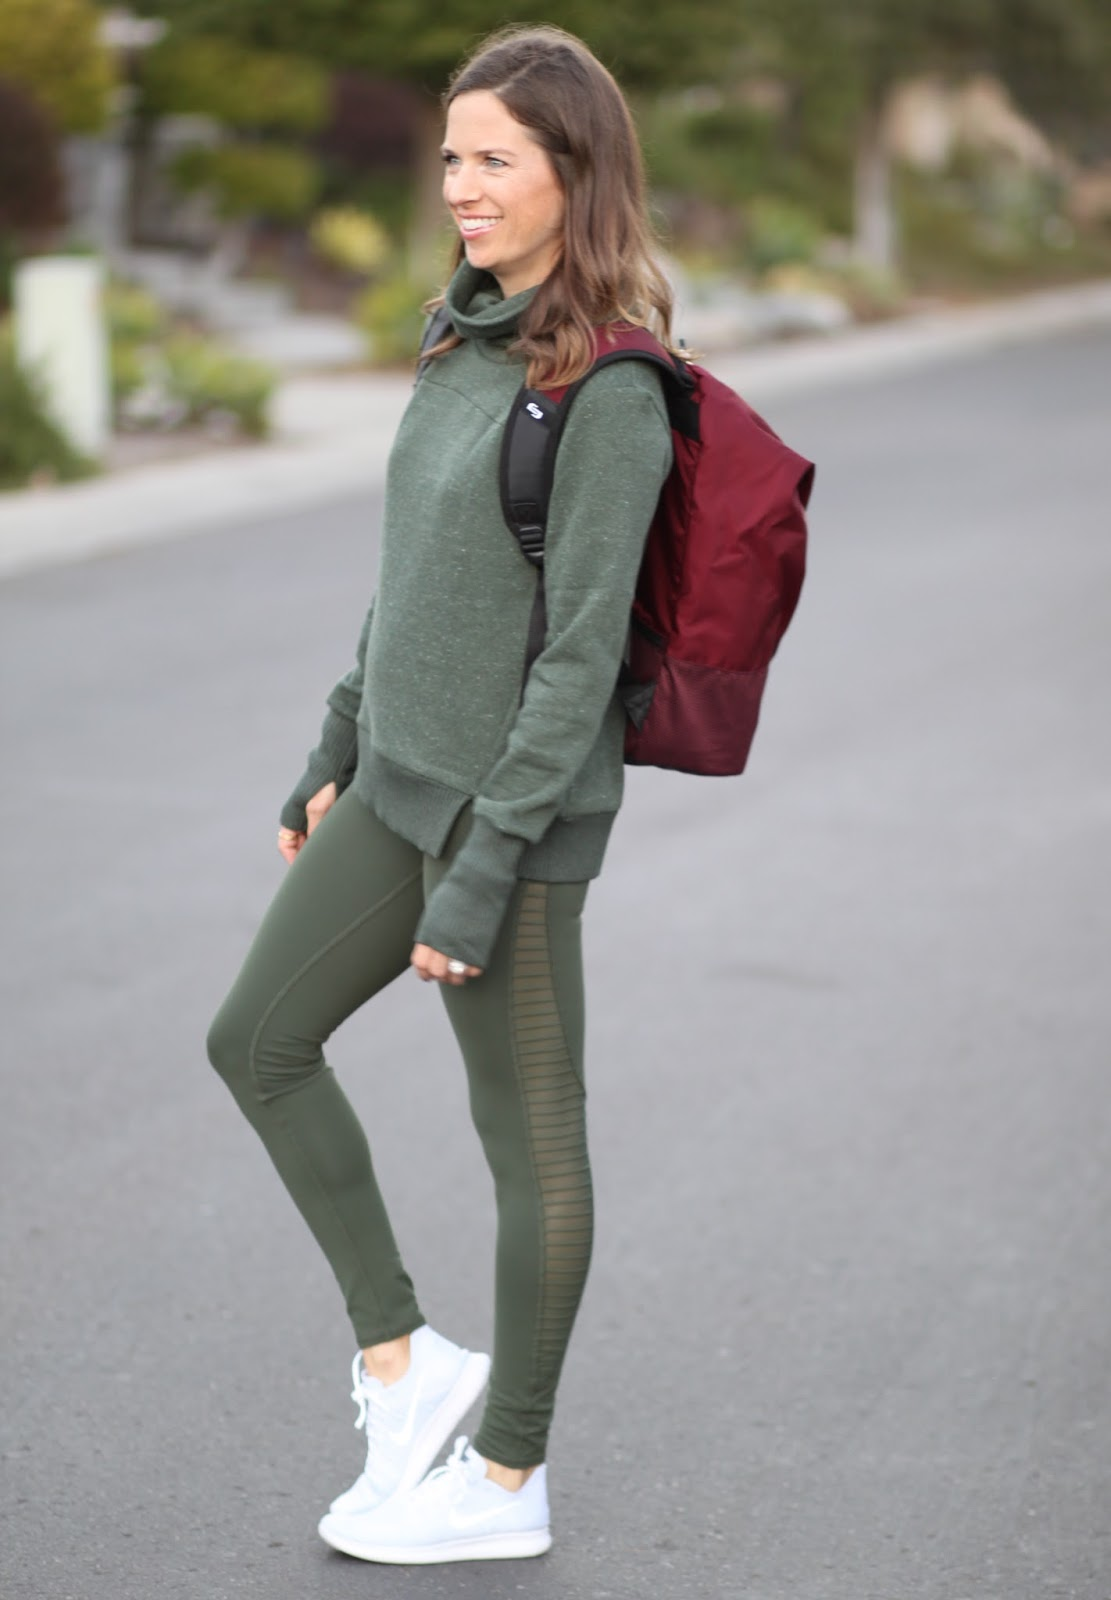 green workout outfit